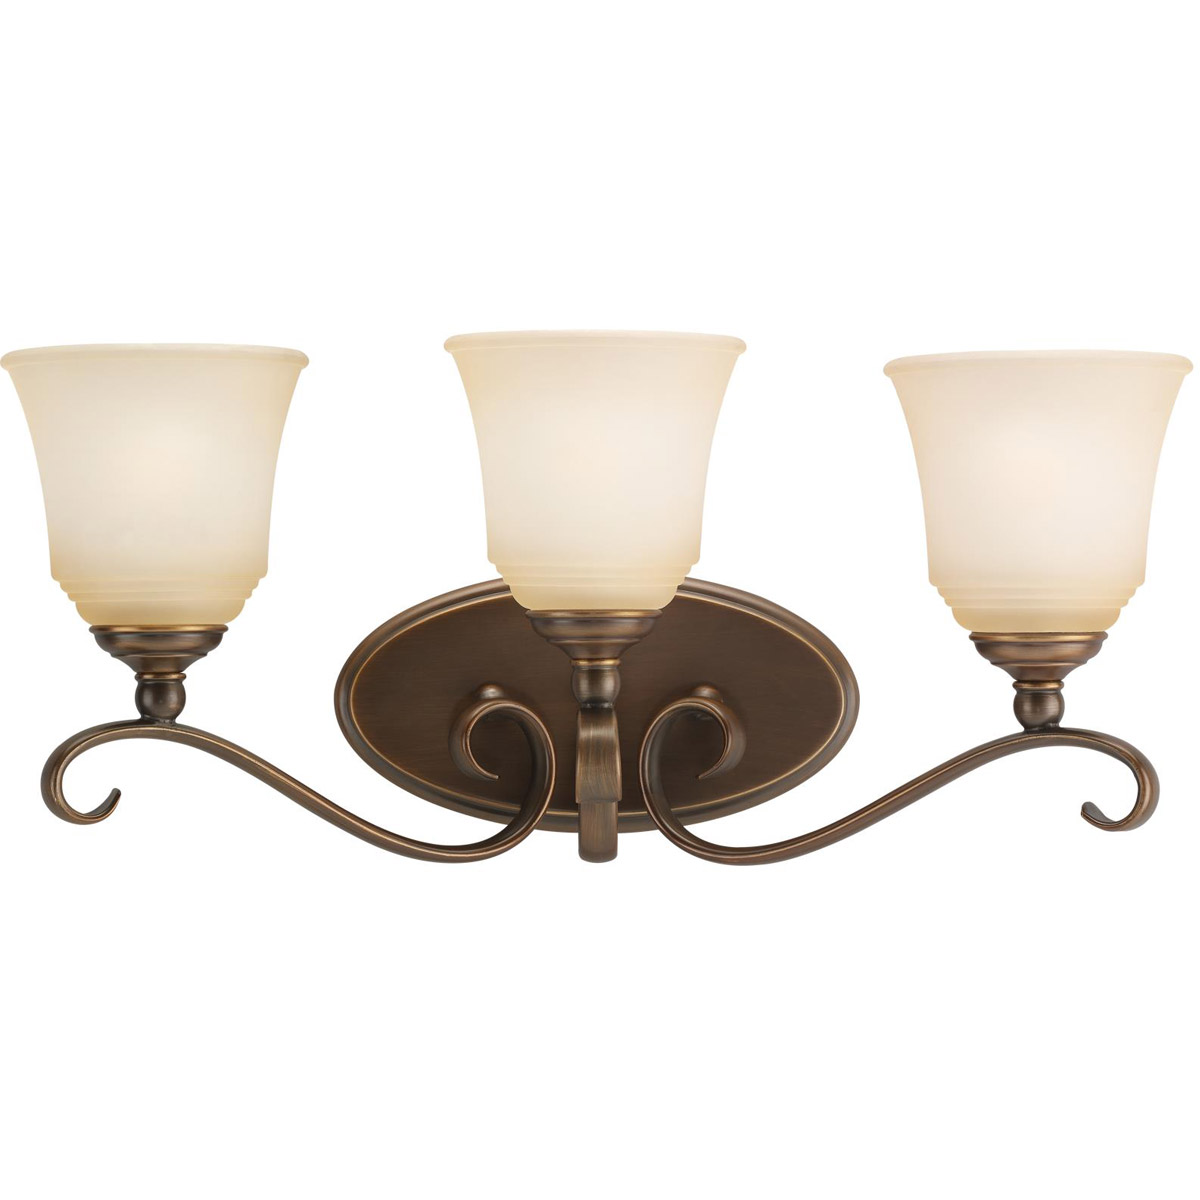 Sea Gull Lighting Parkview 3 Light Bath Vanity in Russet Bronze 44381-829